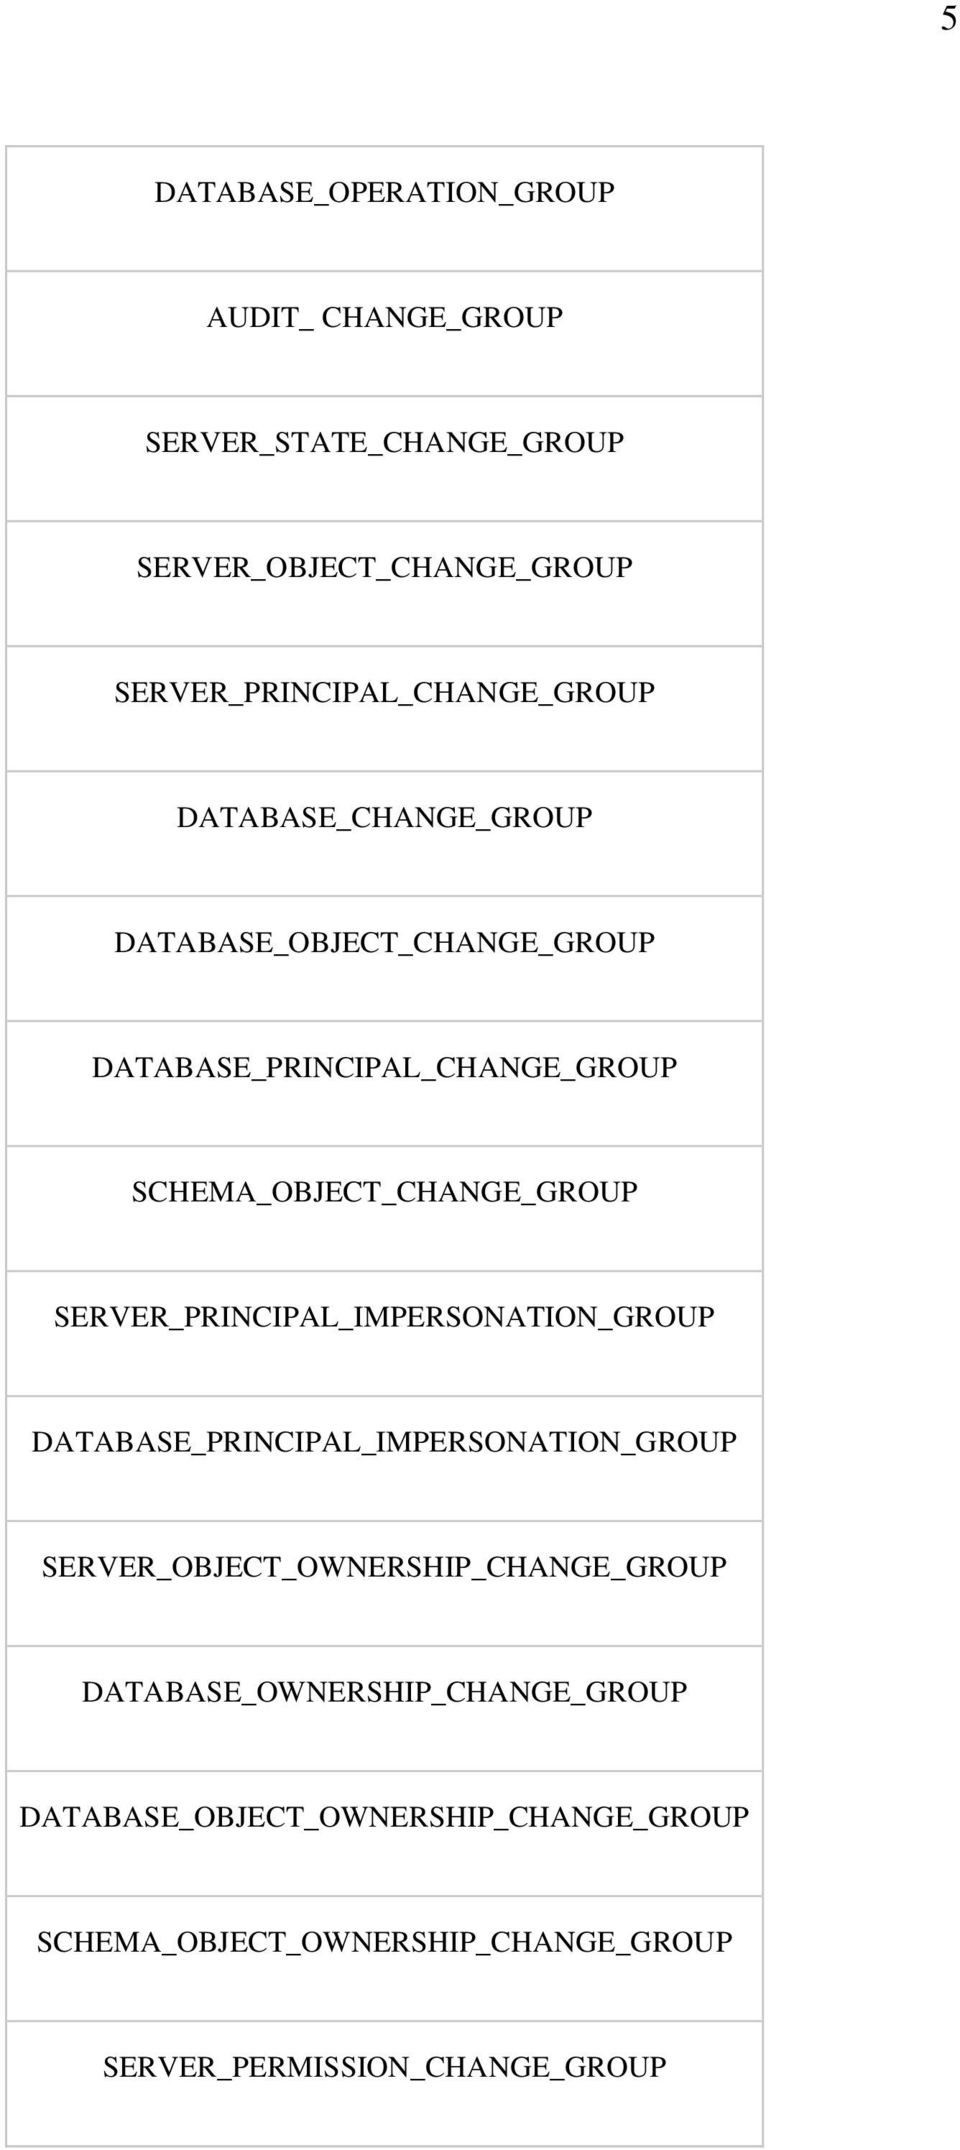 SCHEMA_OBJECT_CHANGE_GROUP SERVER_PRINCIPAL_IMPERSONATION_GROUP DATABASE_PRINCIPAL_IMPERSONATION_GROUP